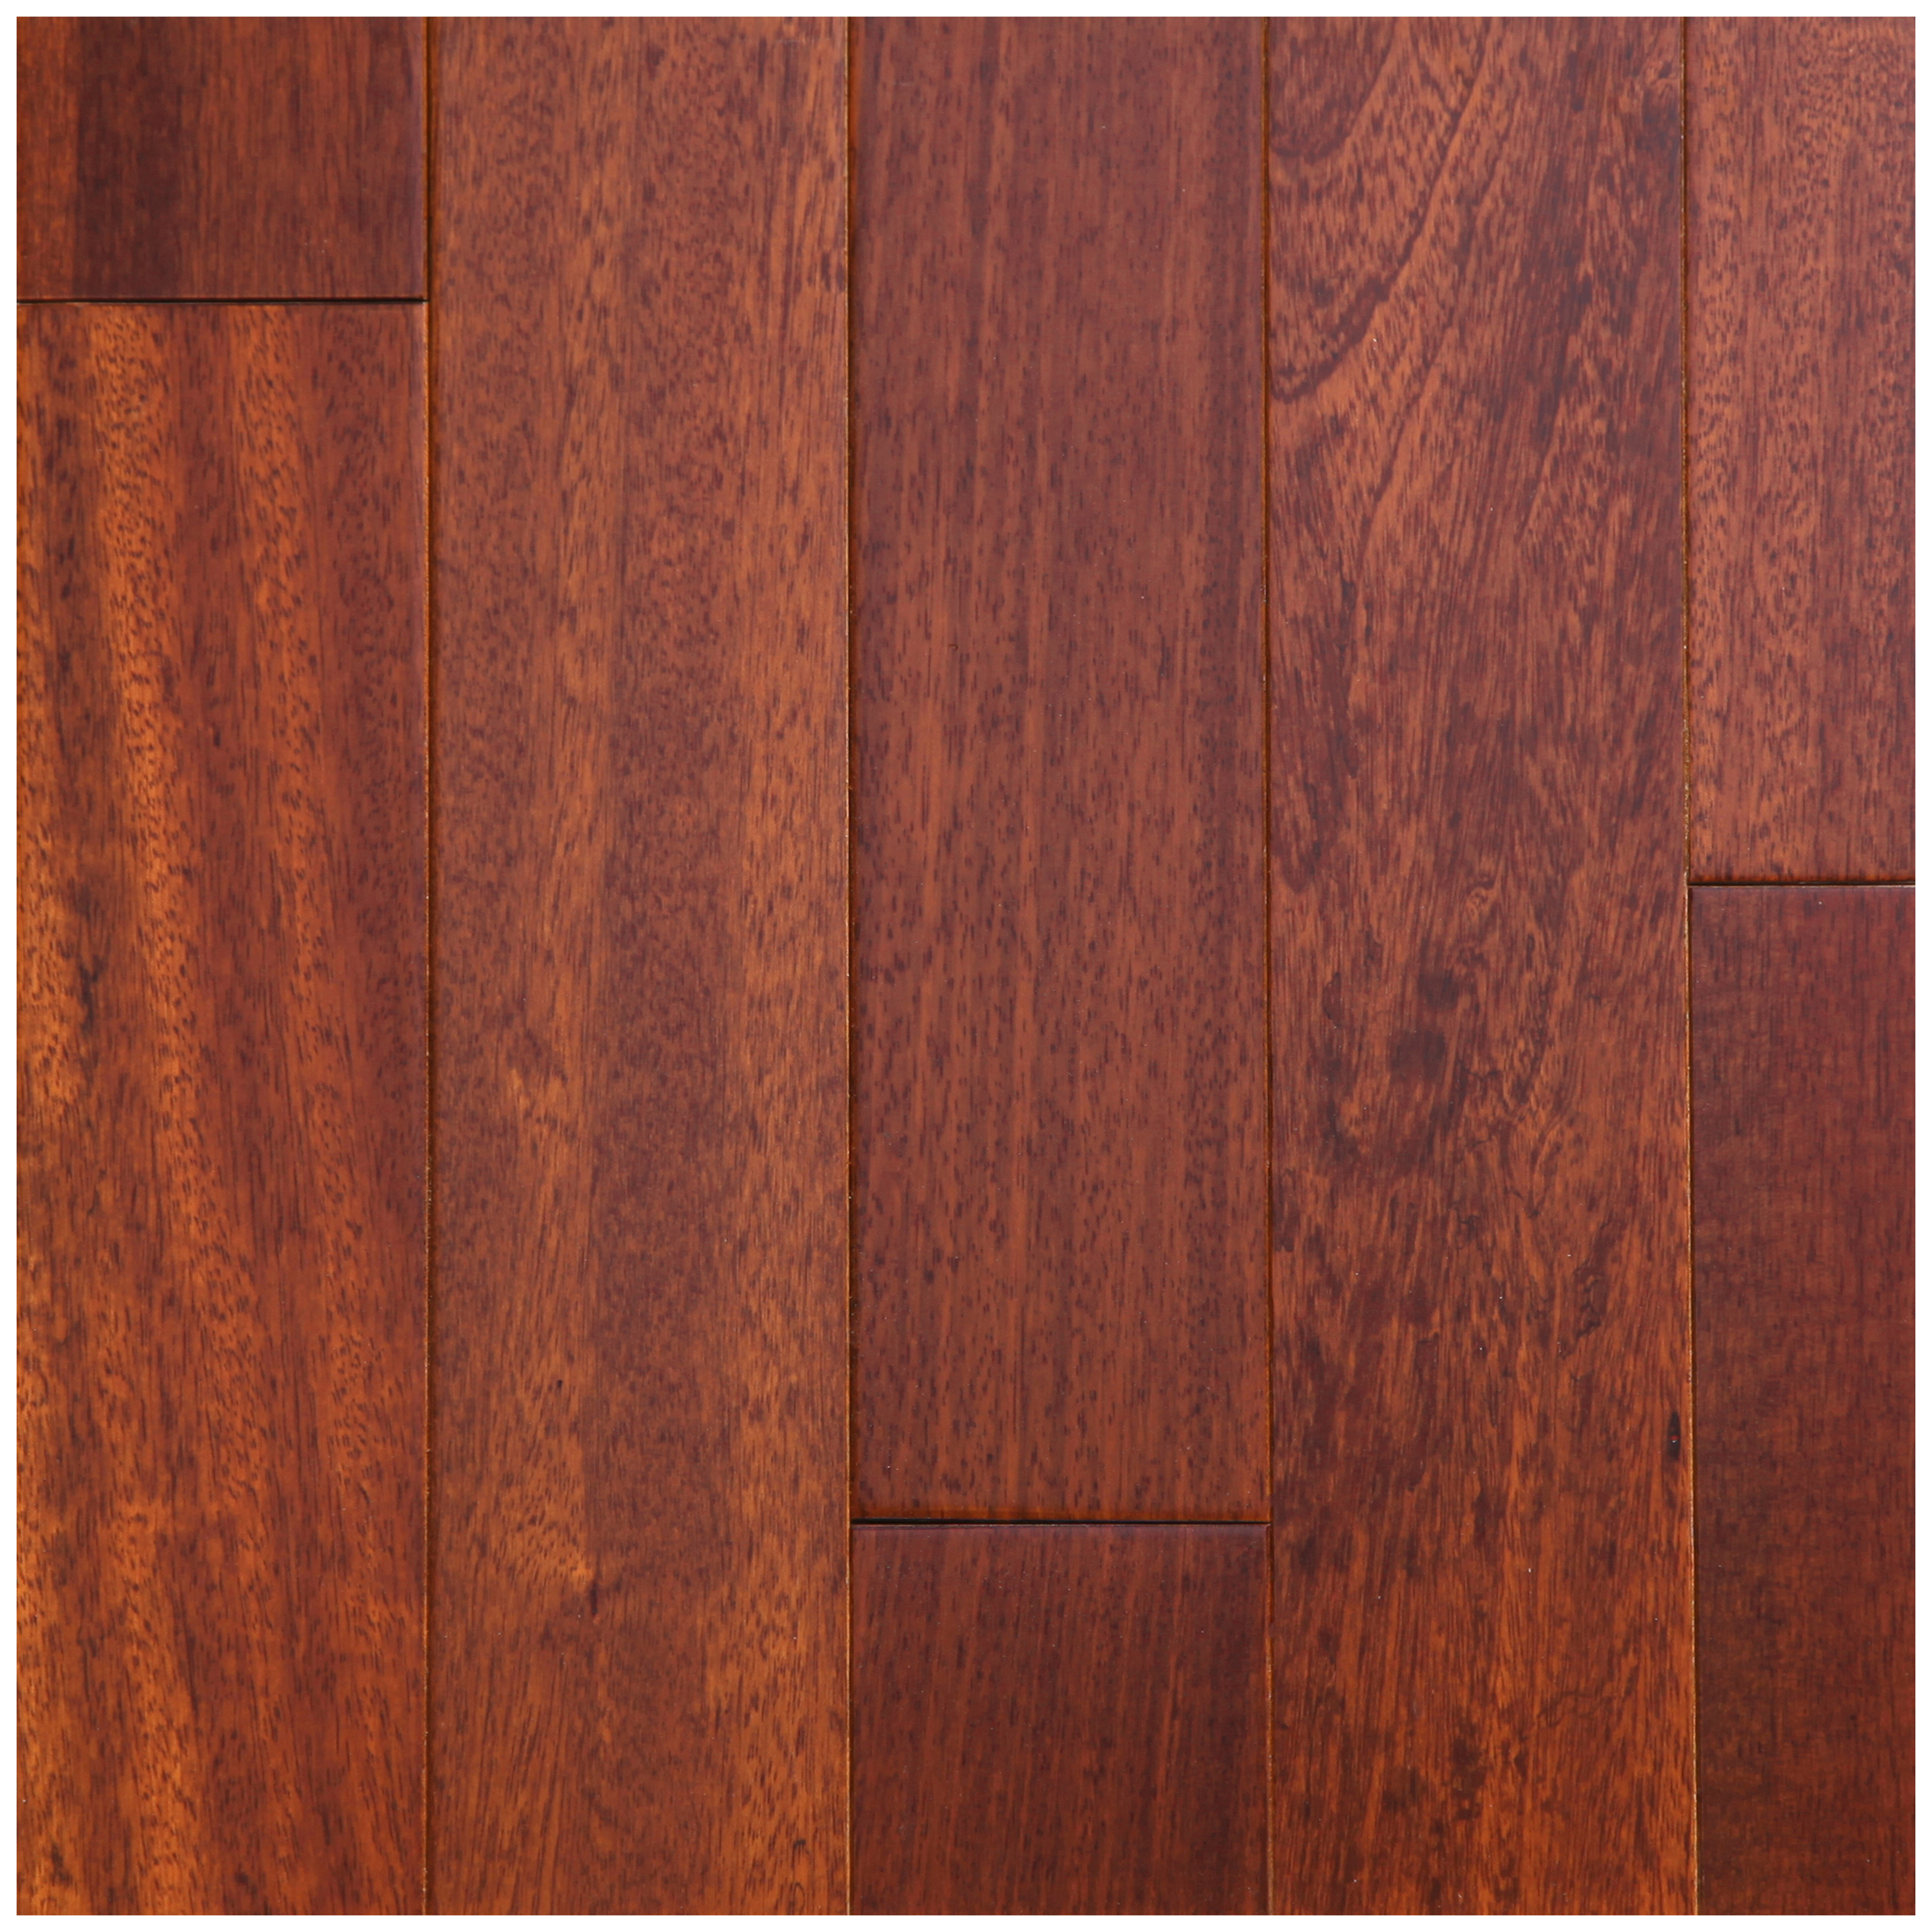 as sanded color max being again once in the after above will wood part time hardwood due is flooring age a american interesting look cherry same blog floors change and